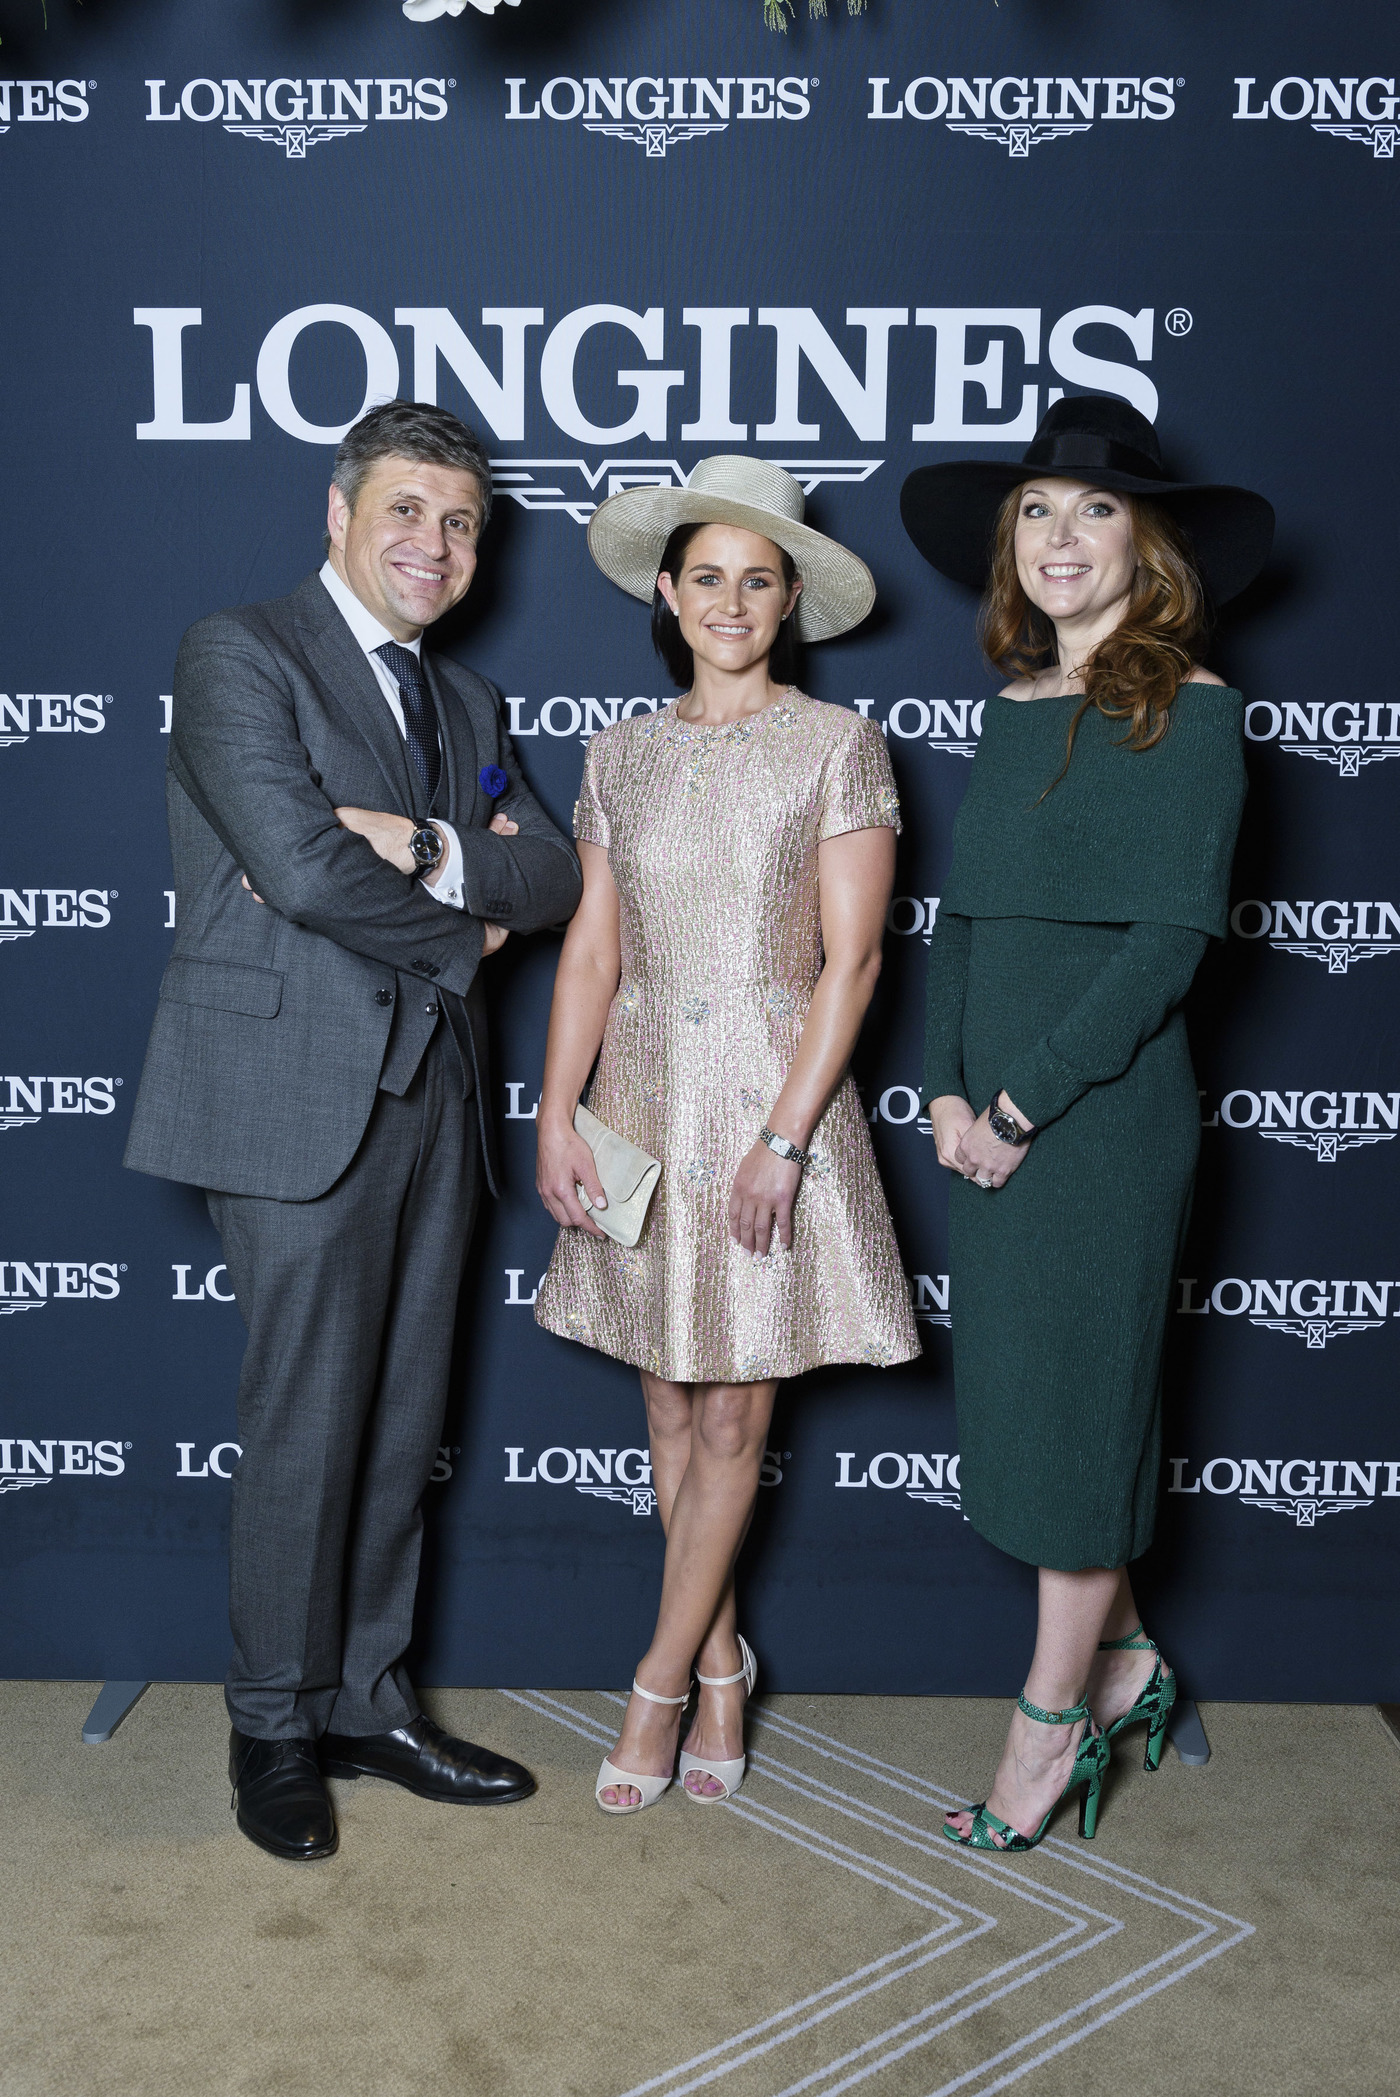 Longines Flat Racing Event: The Longines Queen Elizabeth Stakes brings the Sydney Carnival to an elegant close 5